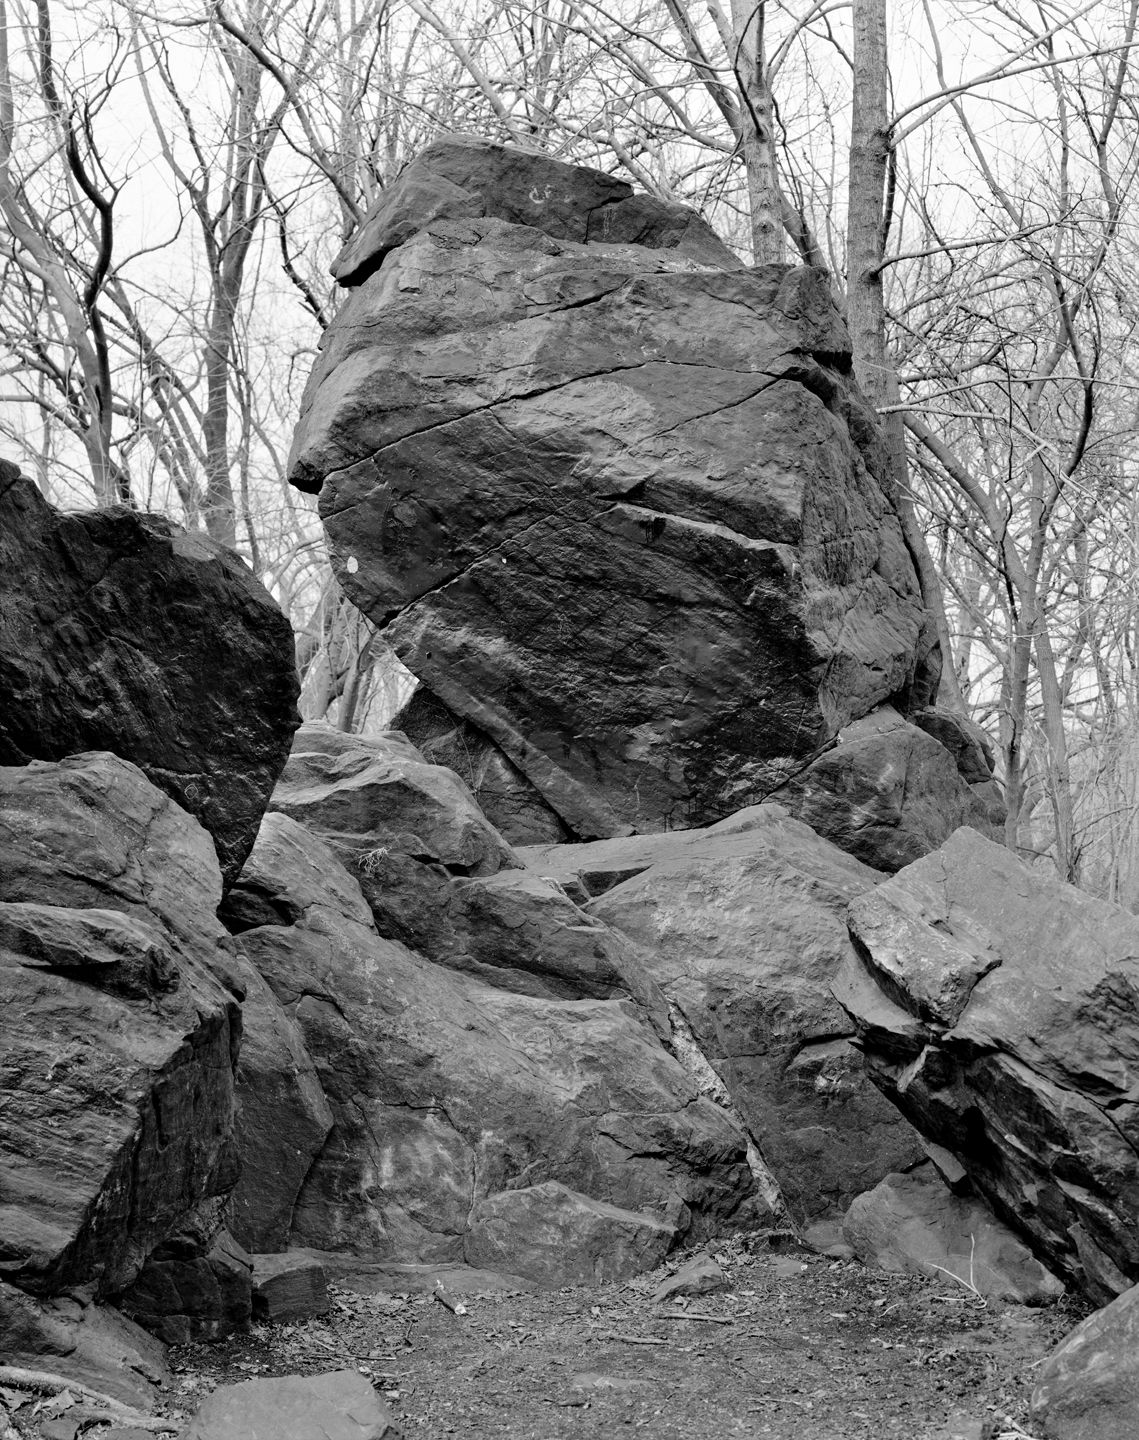 Indian Prayer Rock, Pelham Bay Park, Bronx, from the series Rocks and Clouds, 2014. Gelatin silver print, 40 x 30 or 68 x 54 inches.